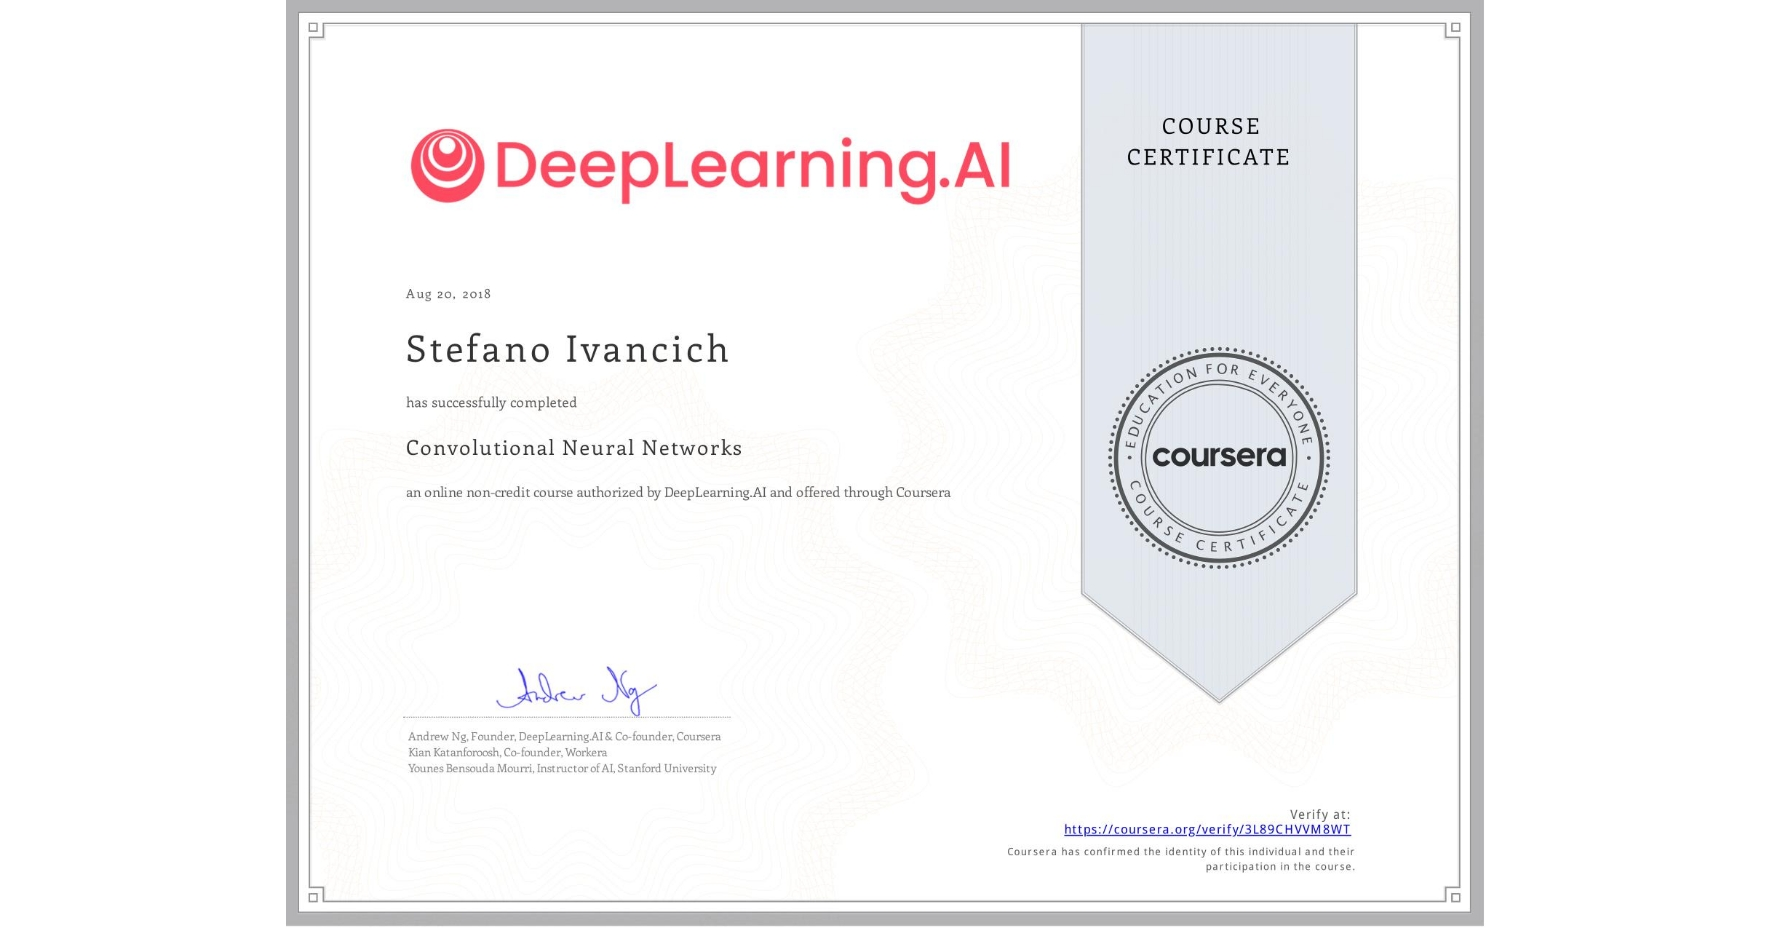 View certificate for Stefano Ivancich, Convolutional Neural Networks, an online non-credit course authorized by DeepLearning.AI and offered through Coursera